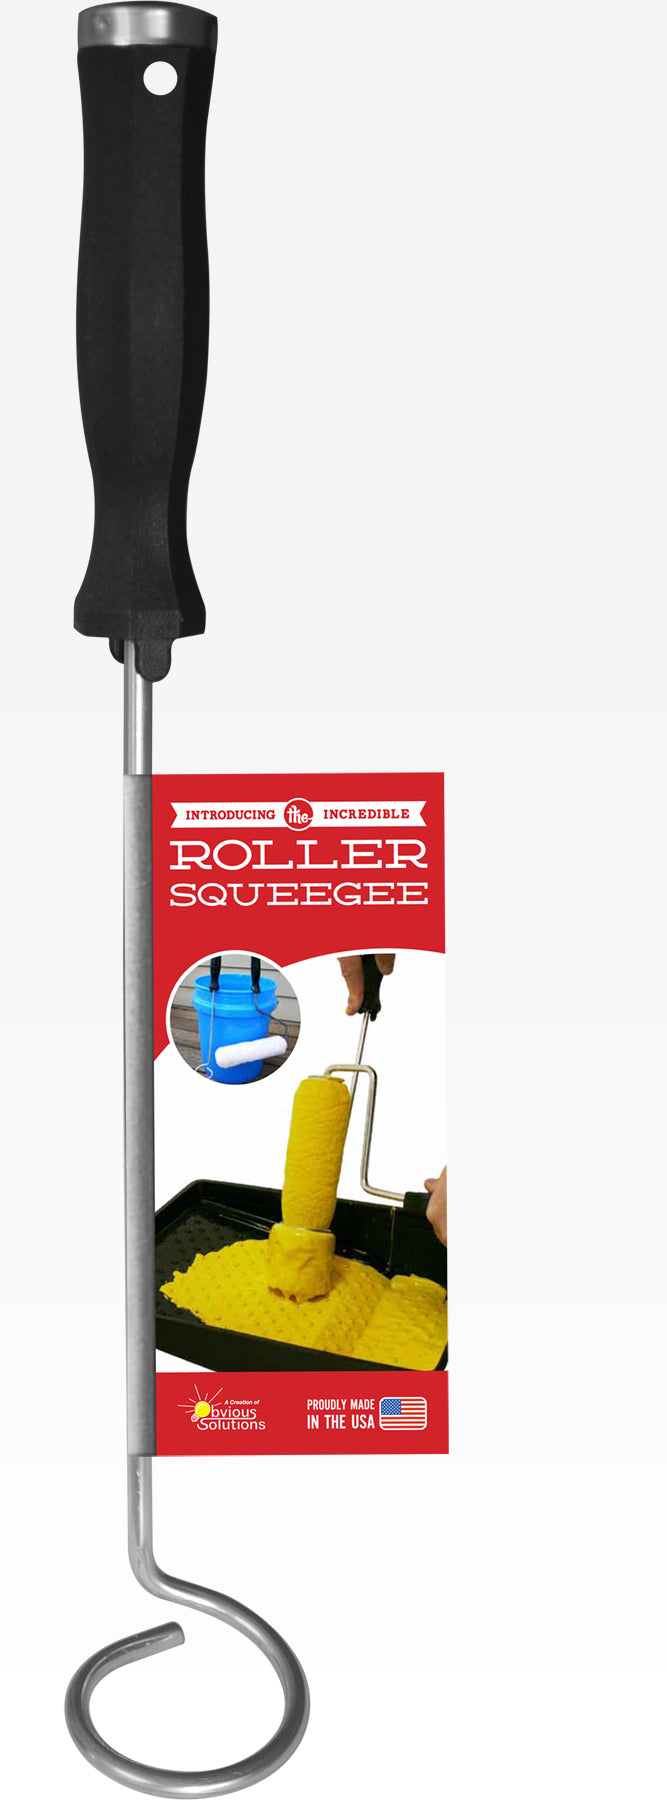 The Incredible Roller Squeegee